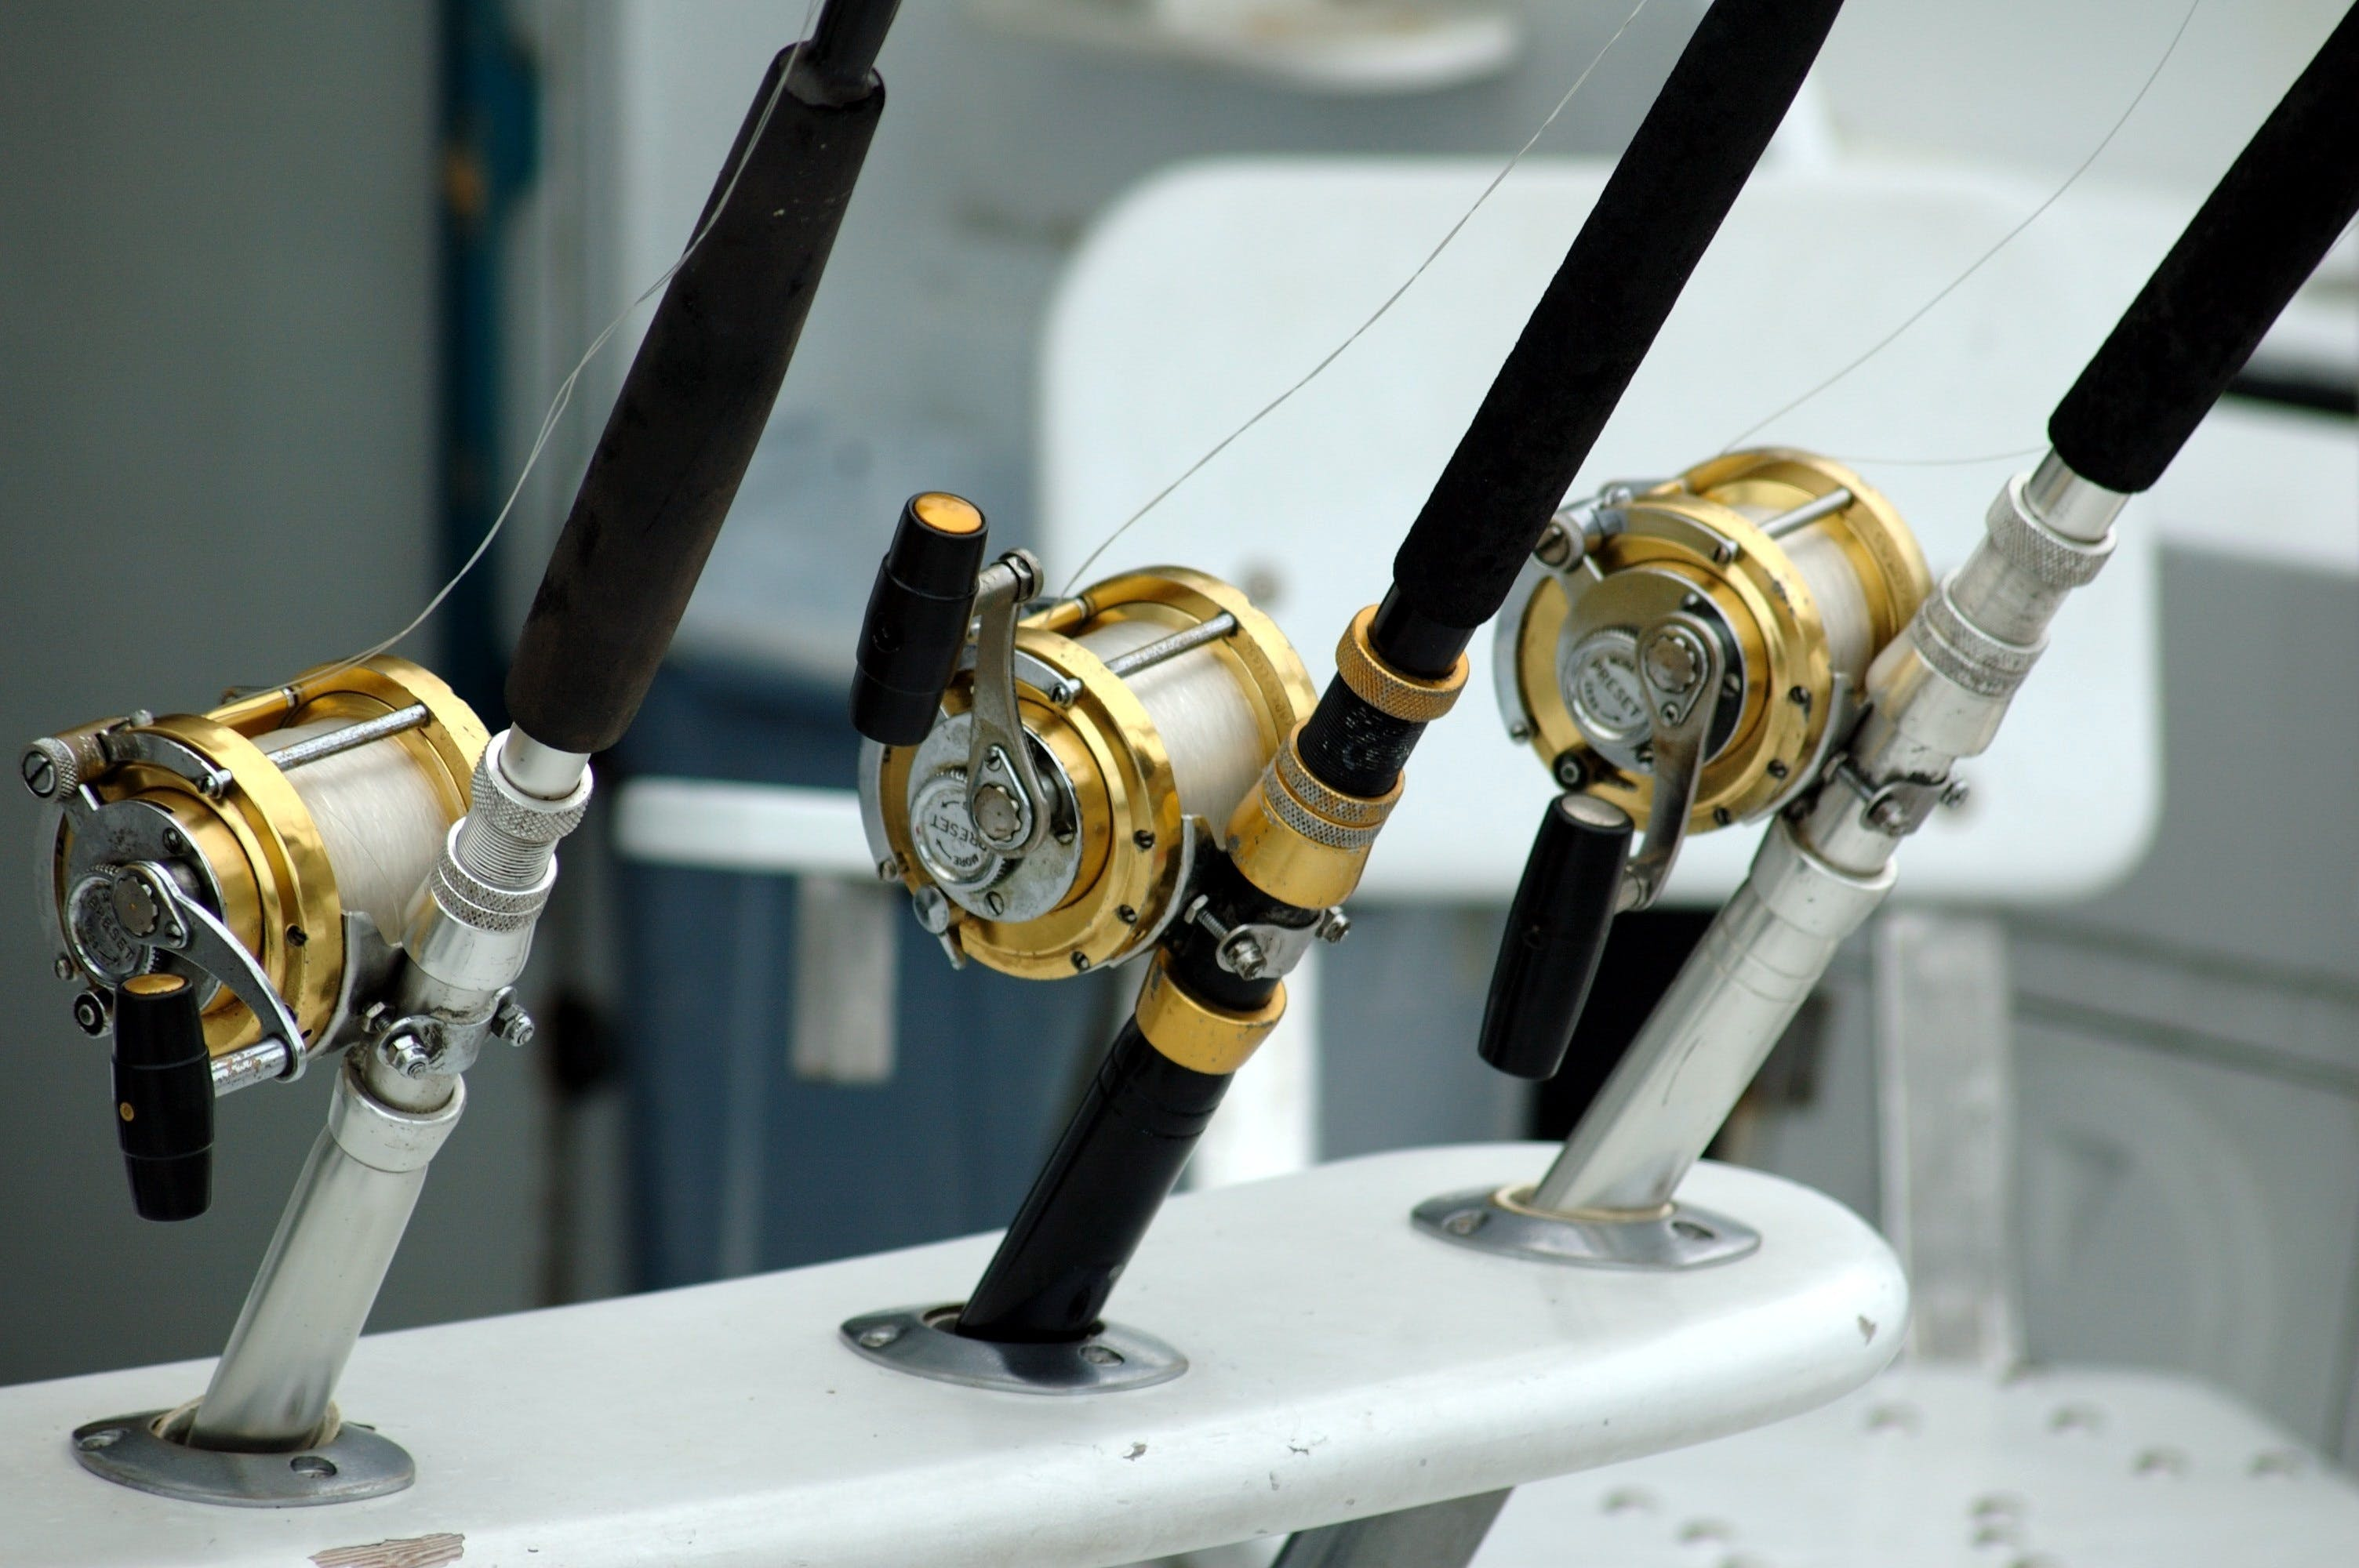 3 Lined Brass and Black Fishing Reel